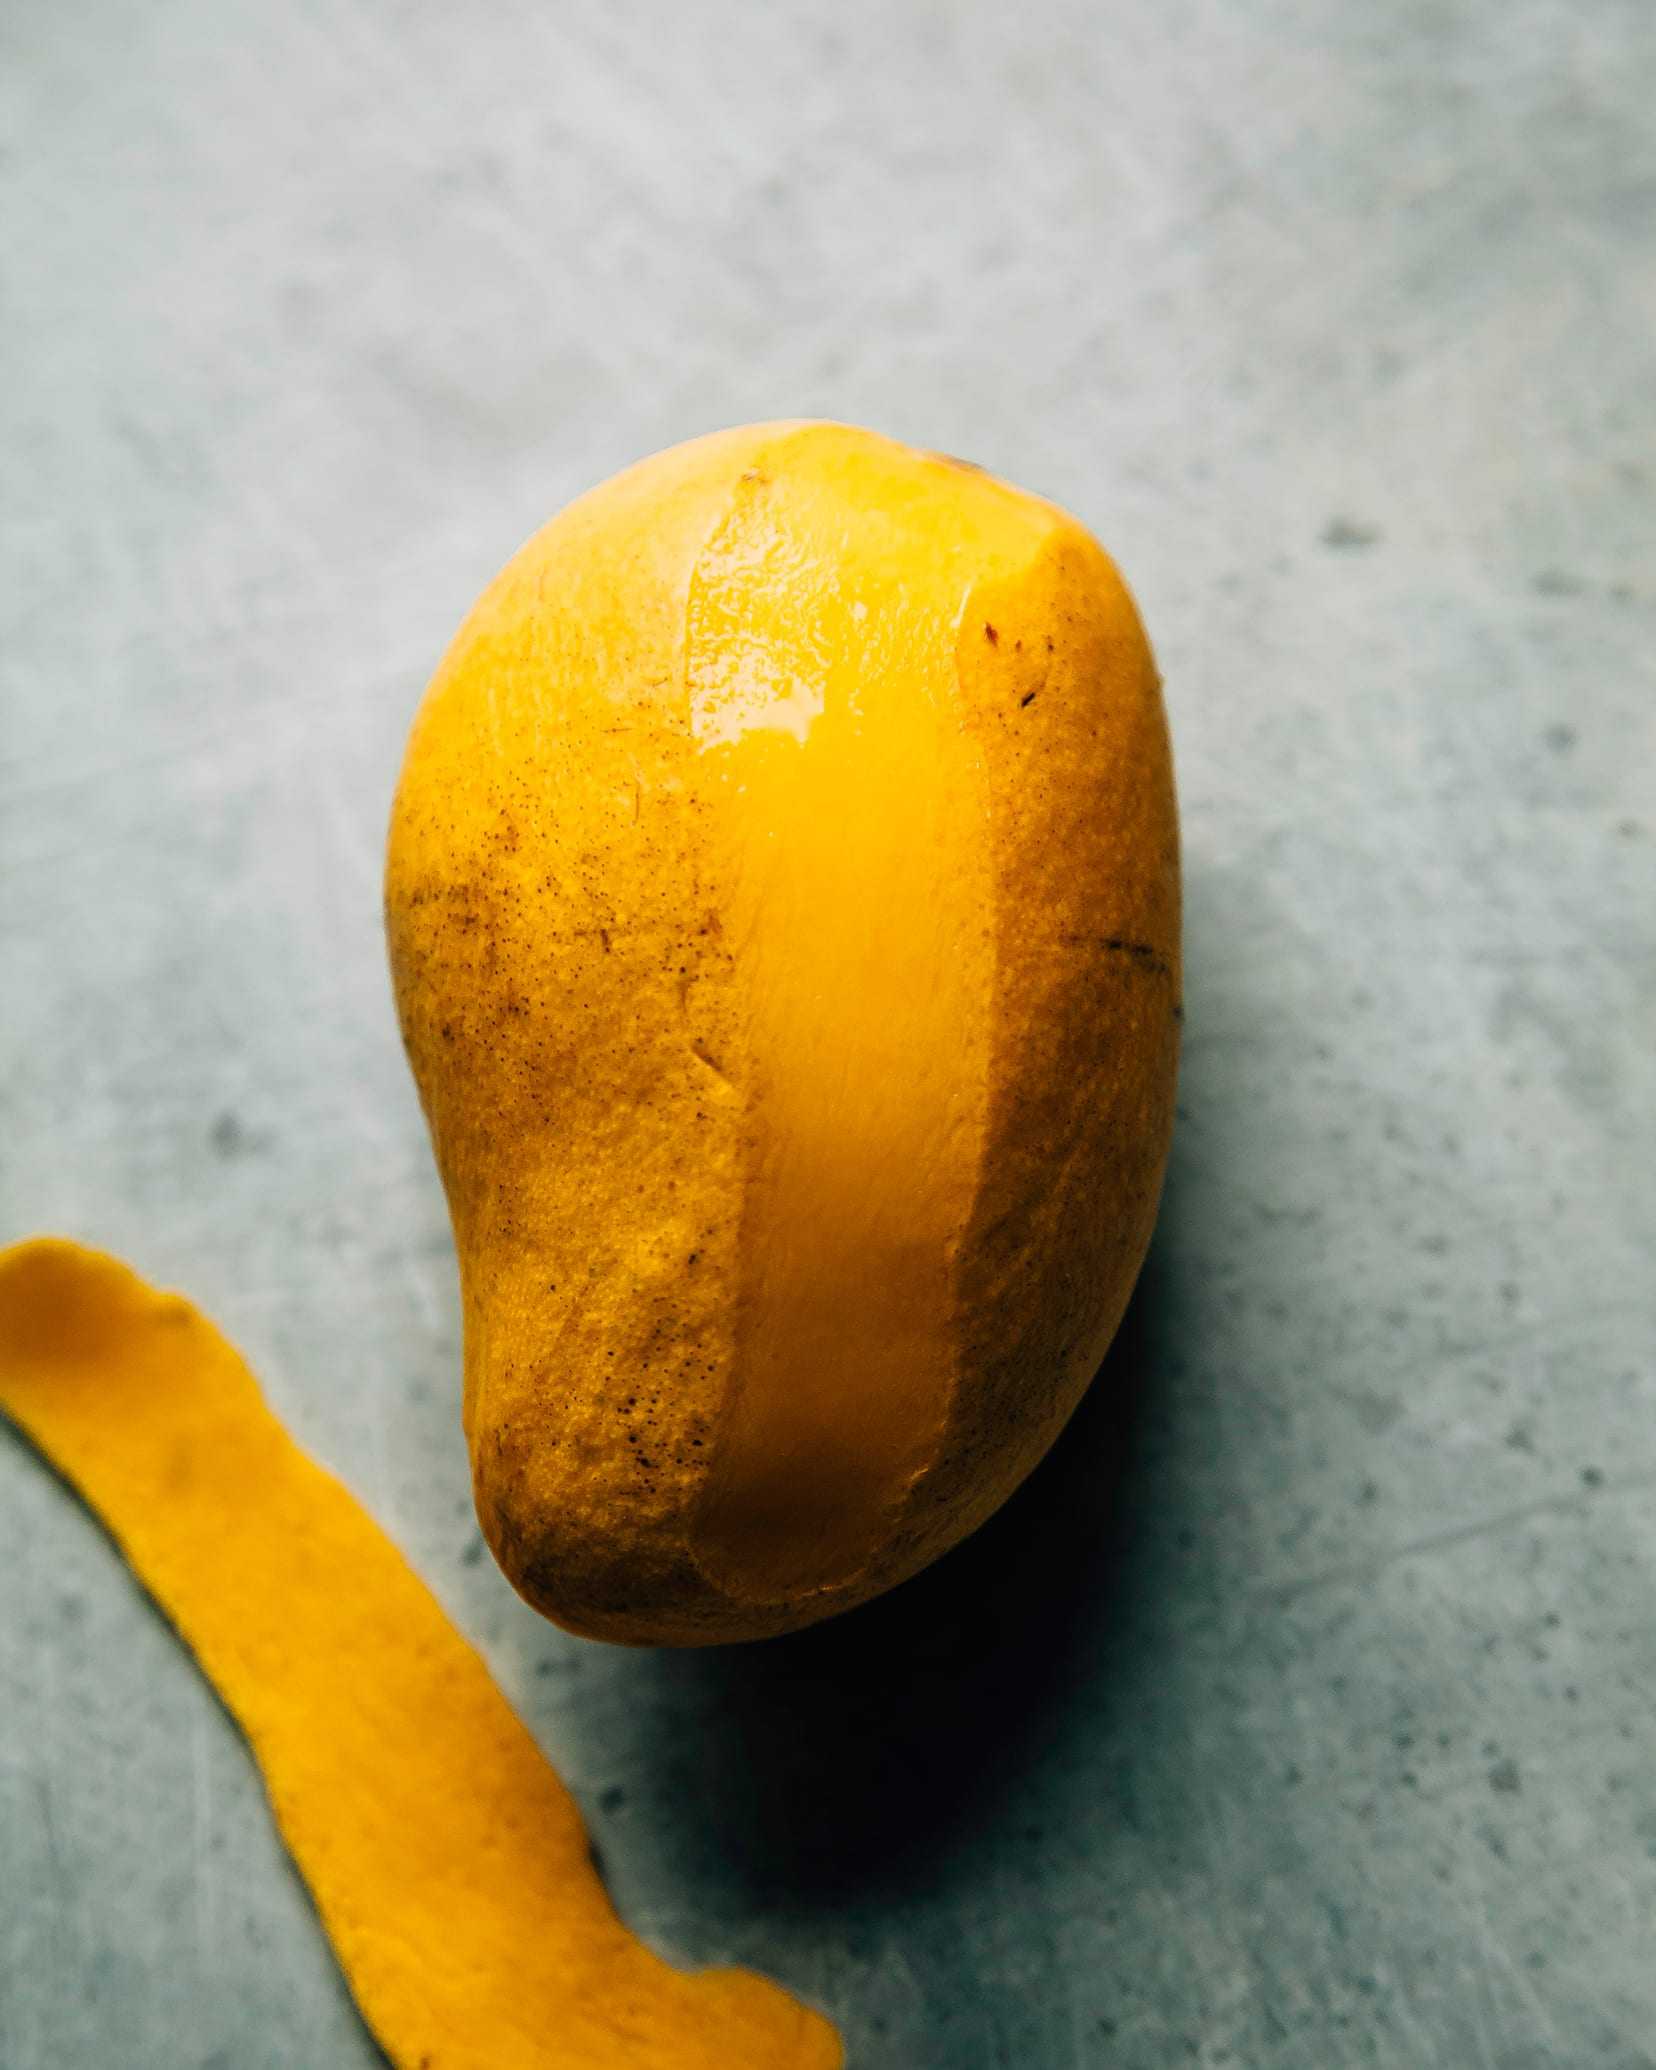 A ripe Ataulfo mango on a pale blue background with a strip of peel removed.